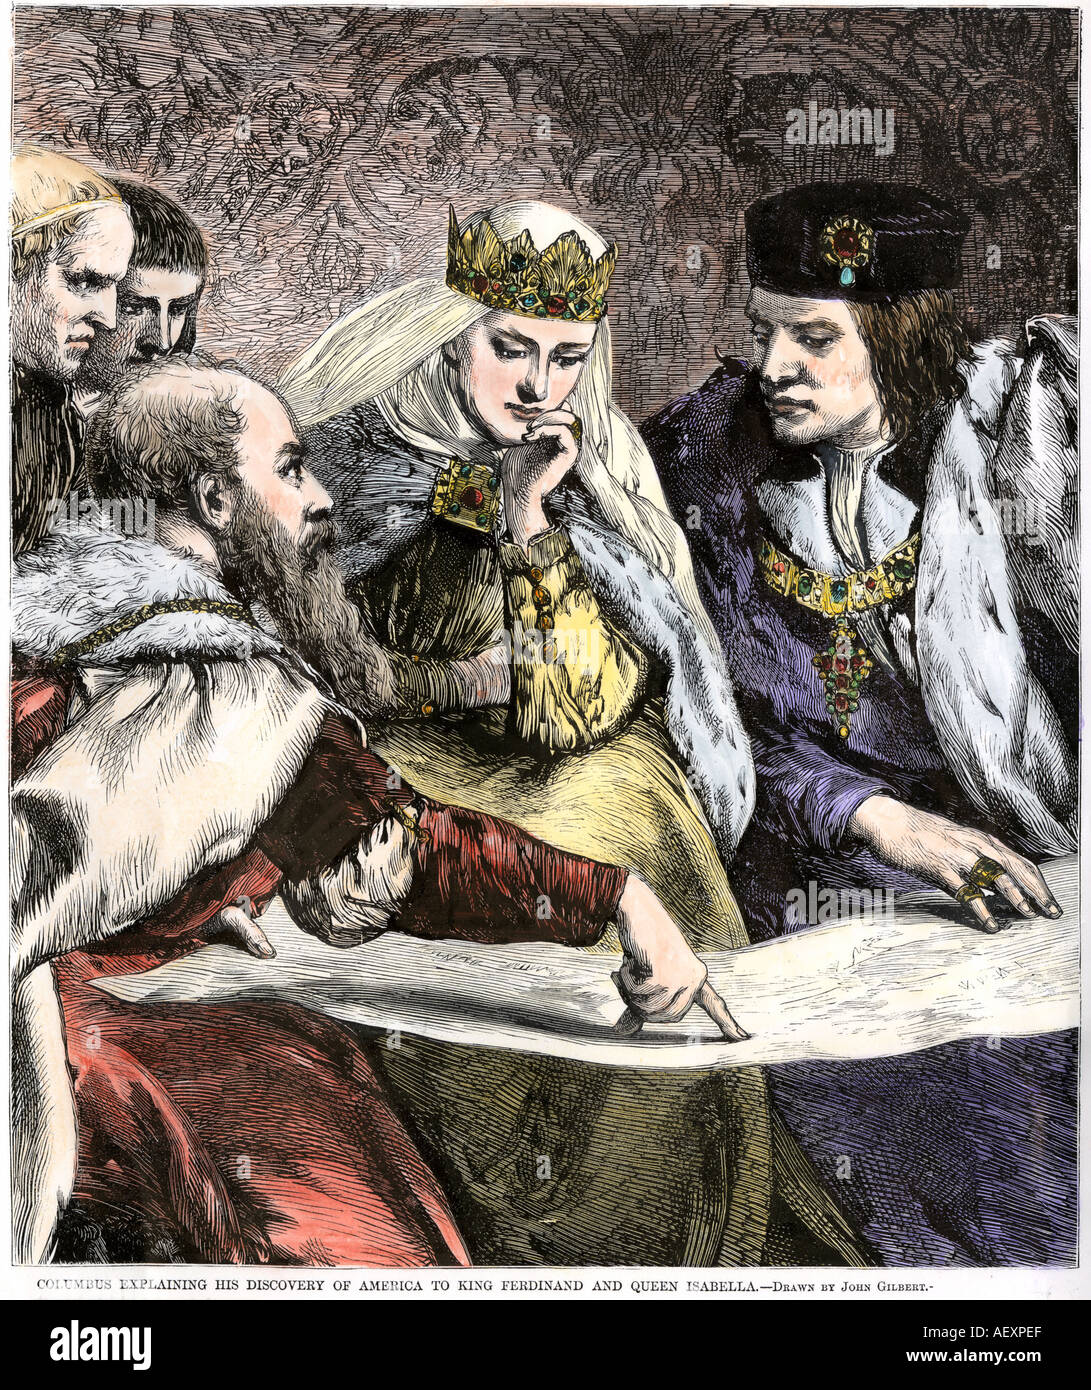 Columbus showing a map to King Ferdinand and Queen Isabella of Spain - Stock Image